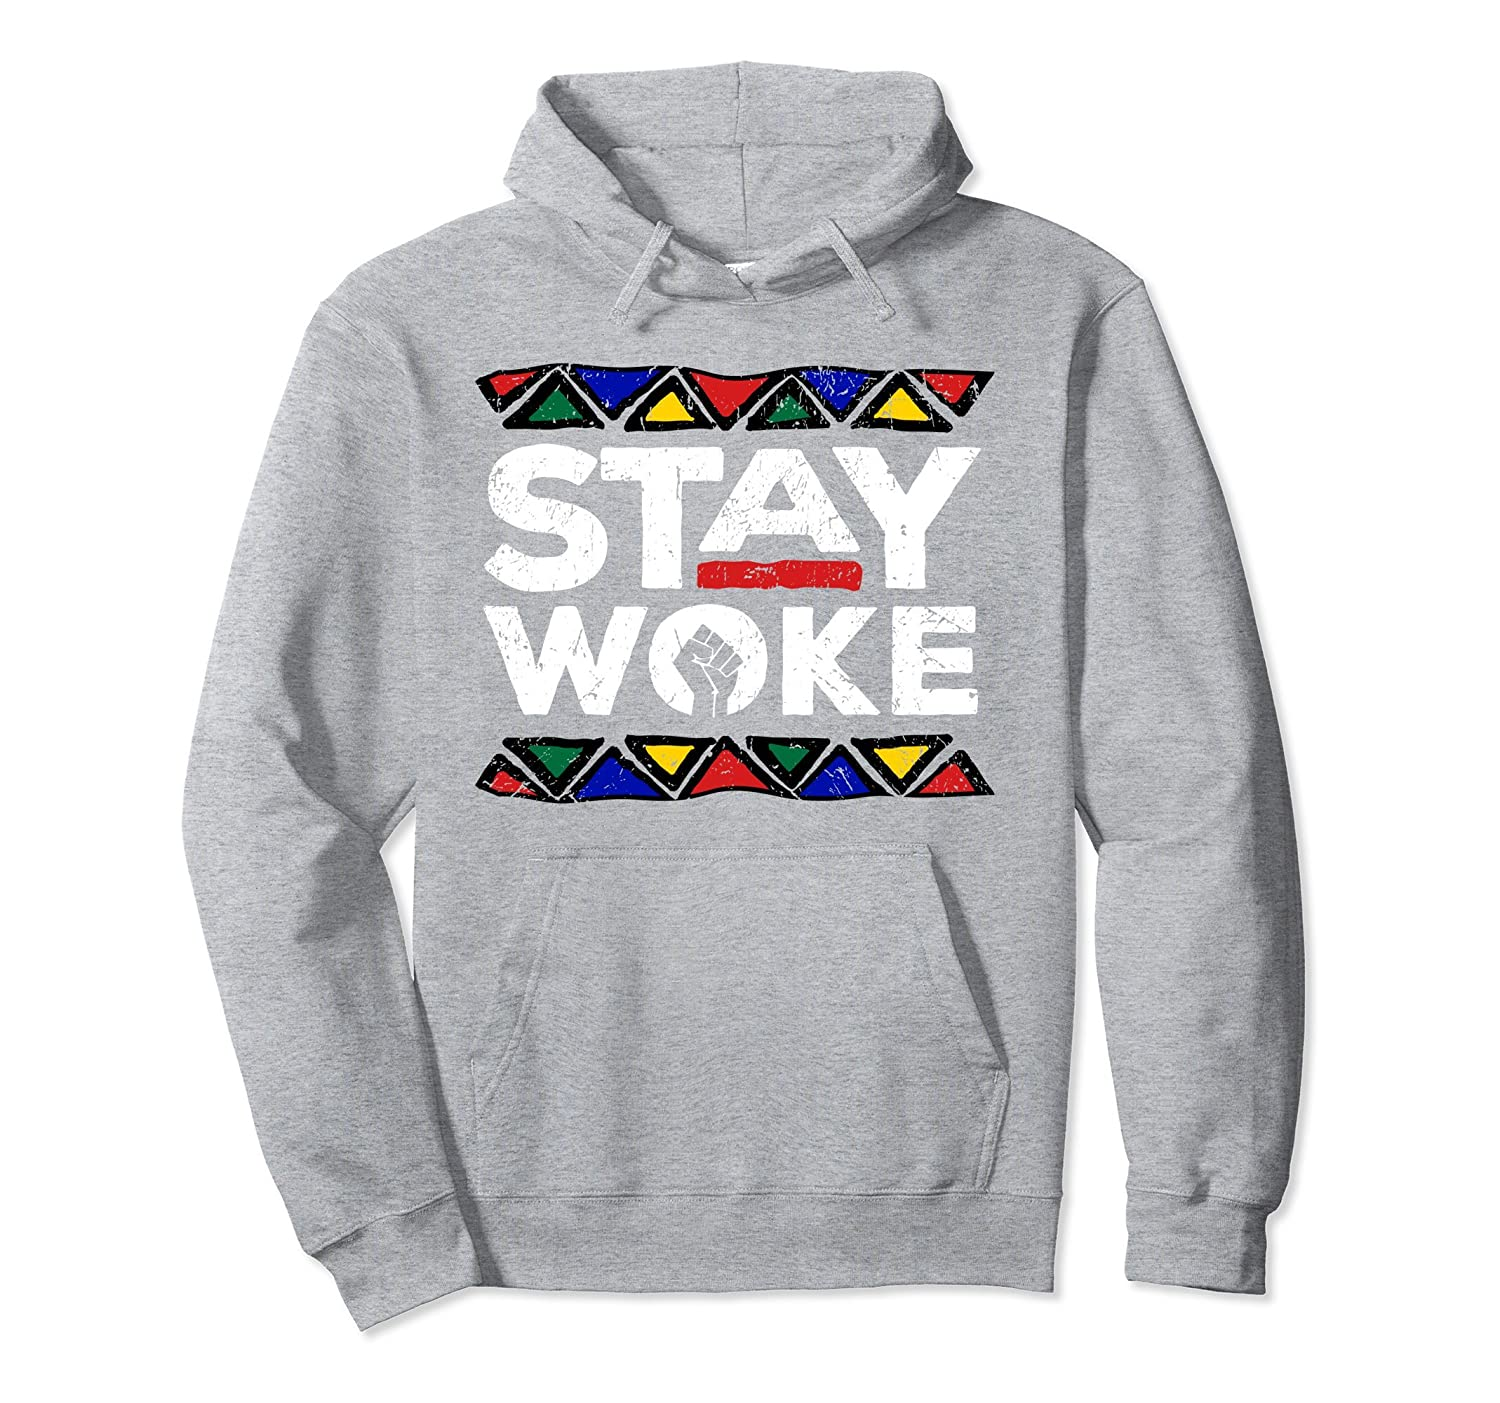 Stay Woke Black History Month Pride Panthers Gift Hoodie-AZP